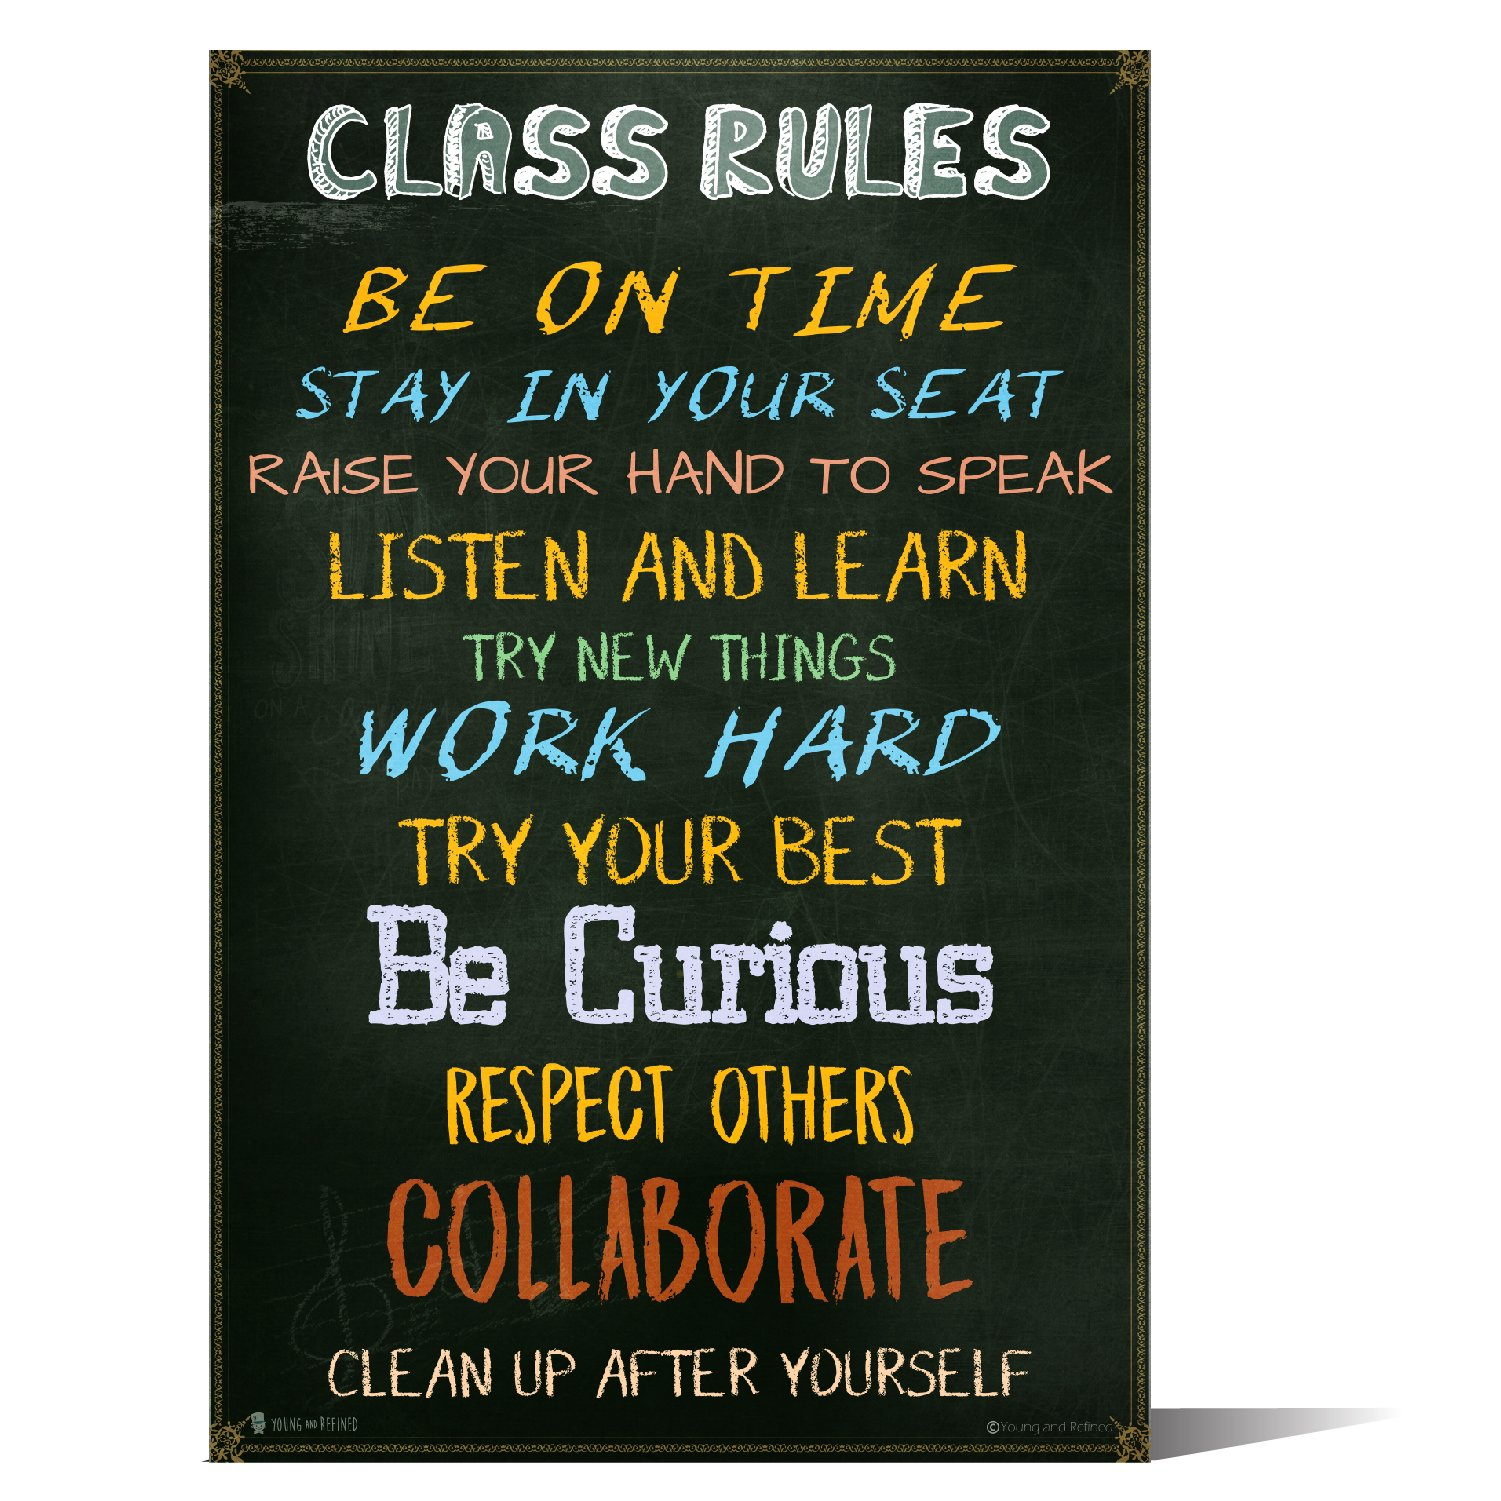 Classroom Rules sign chart LAMINATED EXTRA LARGE by Teachers for students learning in school study hall (20x30) by Young and refined (Image #1)